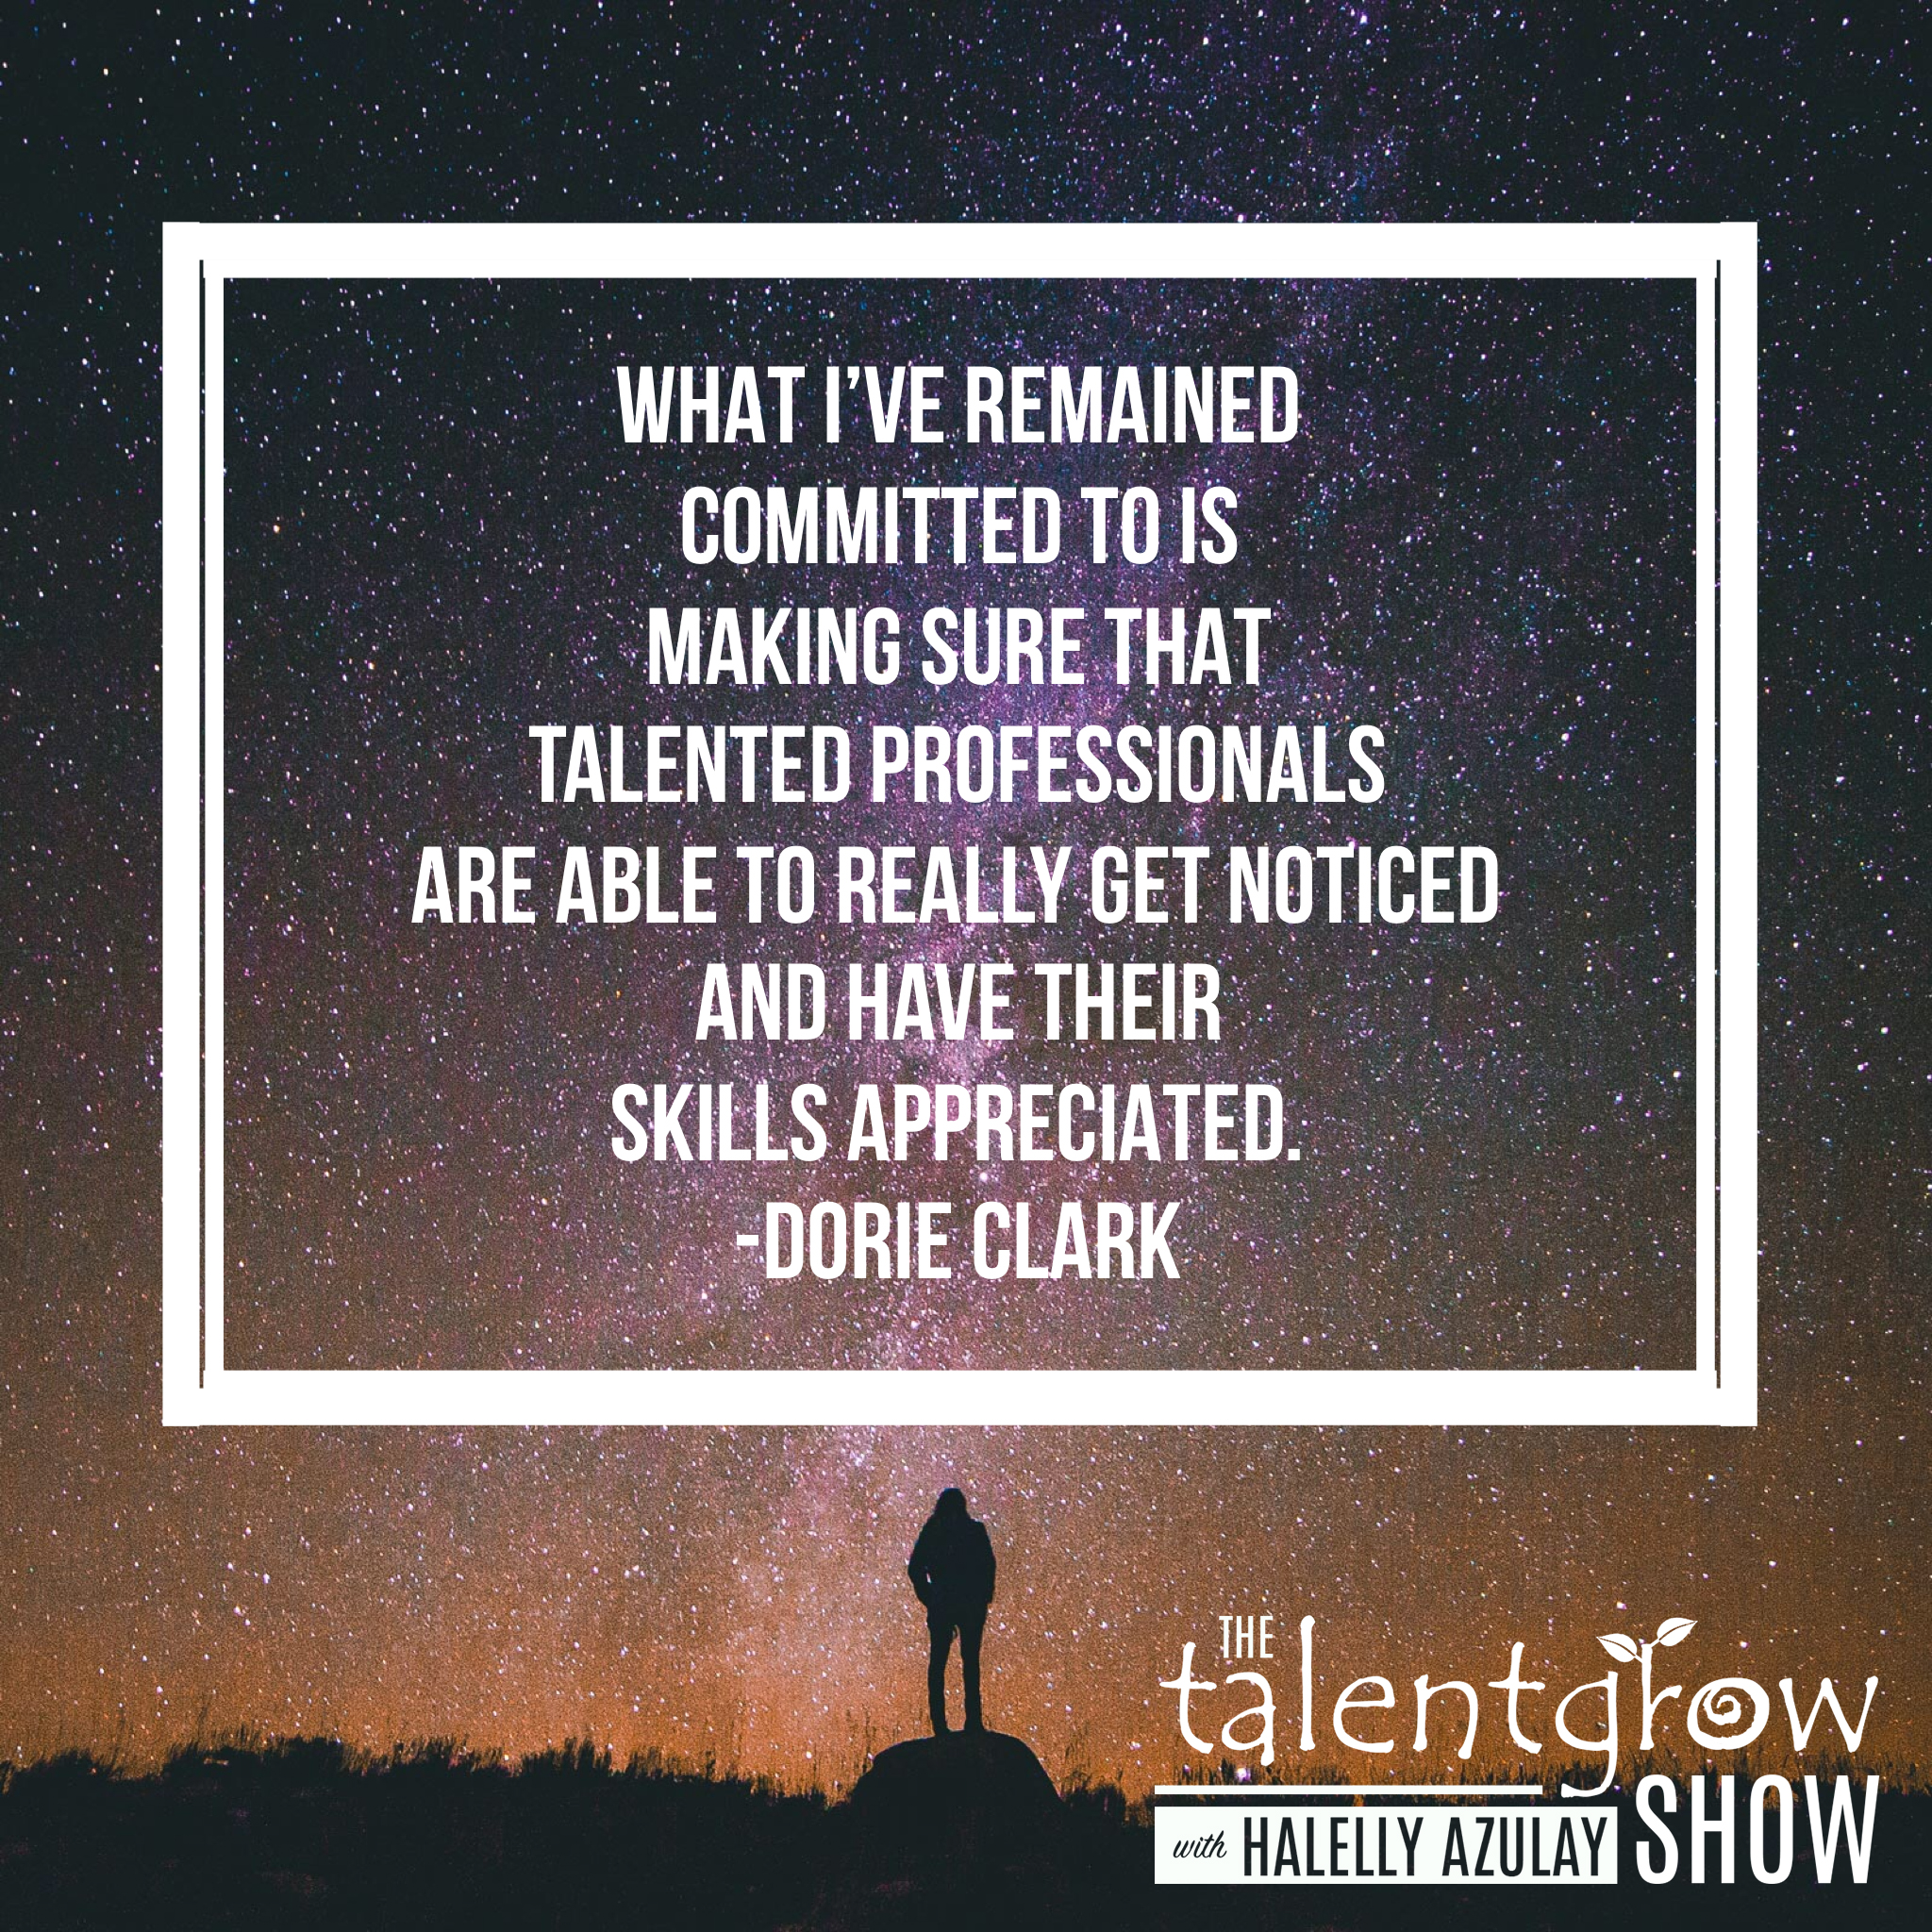 Personal branding from Dorie Clark on the TalentGrow Show podcast with Halelly Azulay